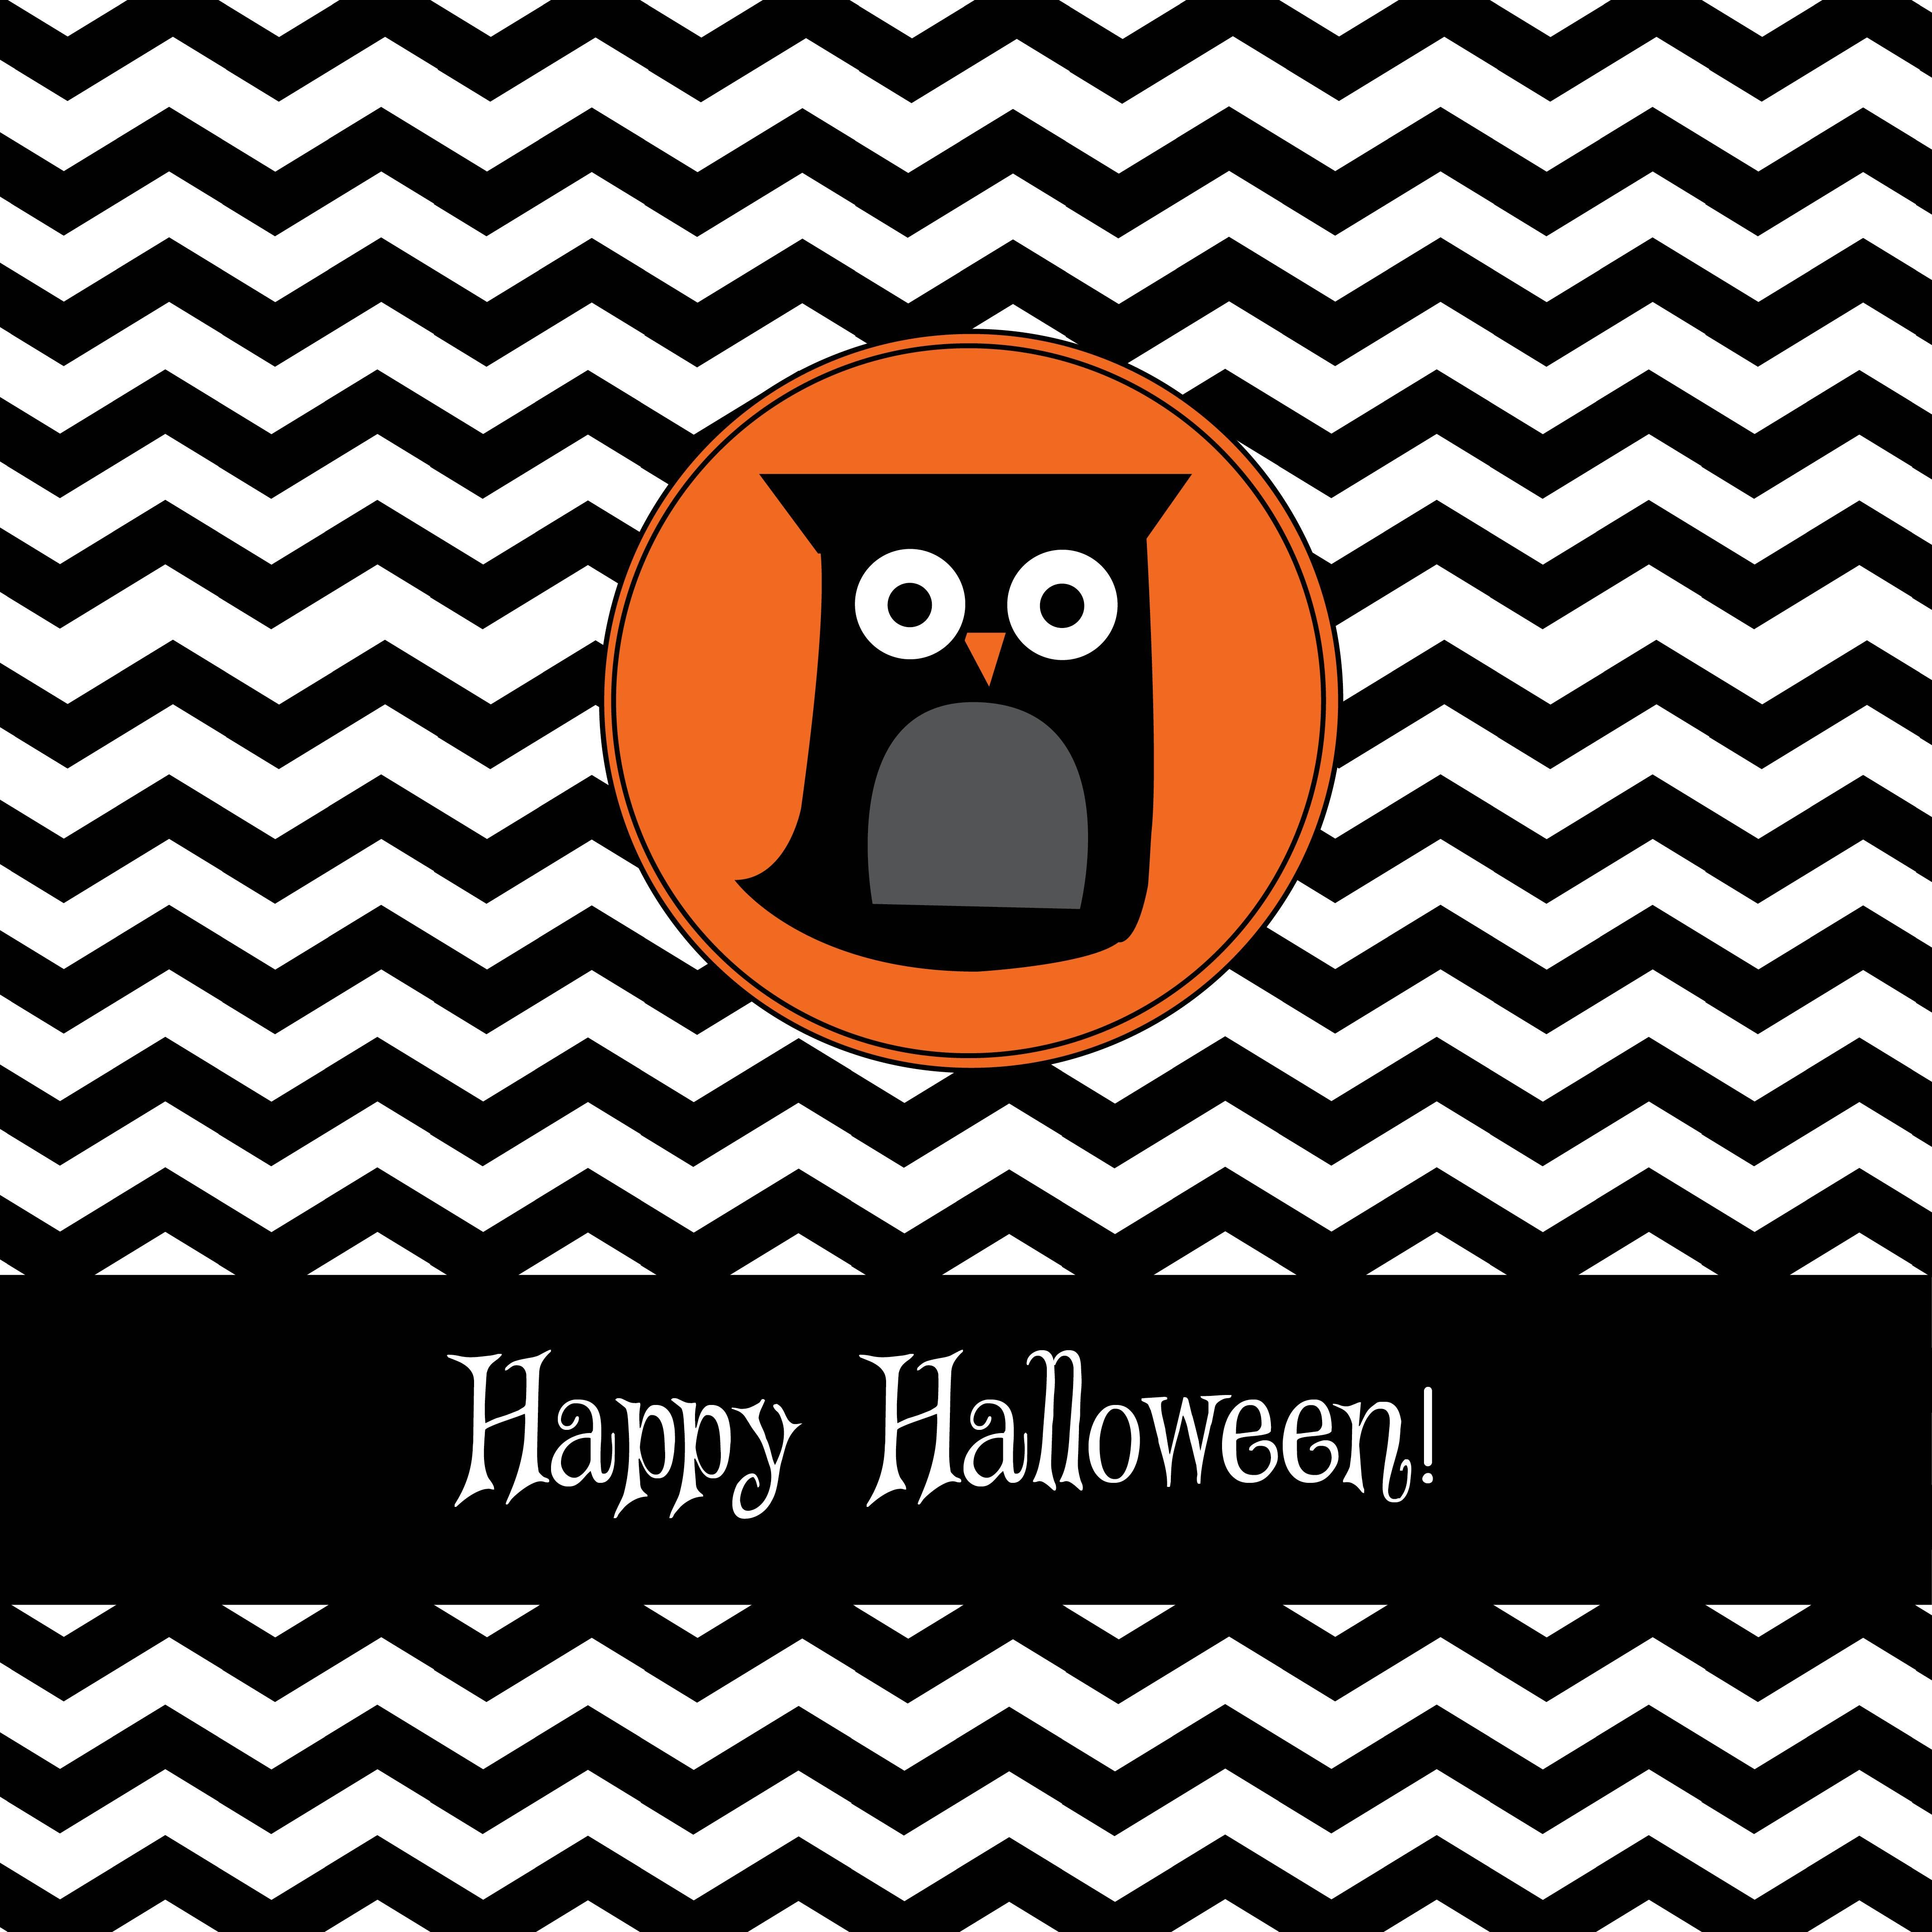 Wallpapers For > Cute Fall Owl Wallpapers Halloween